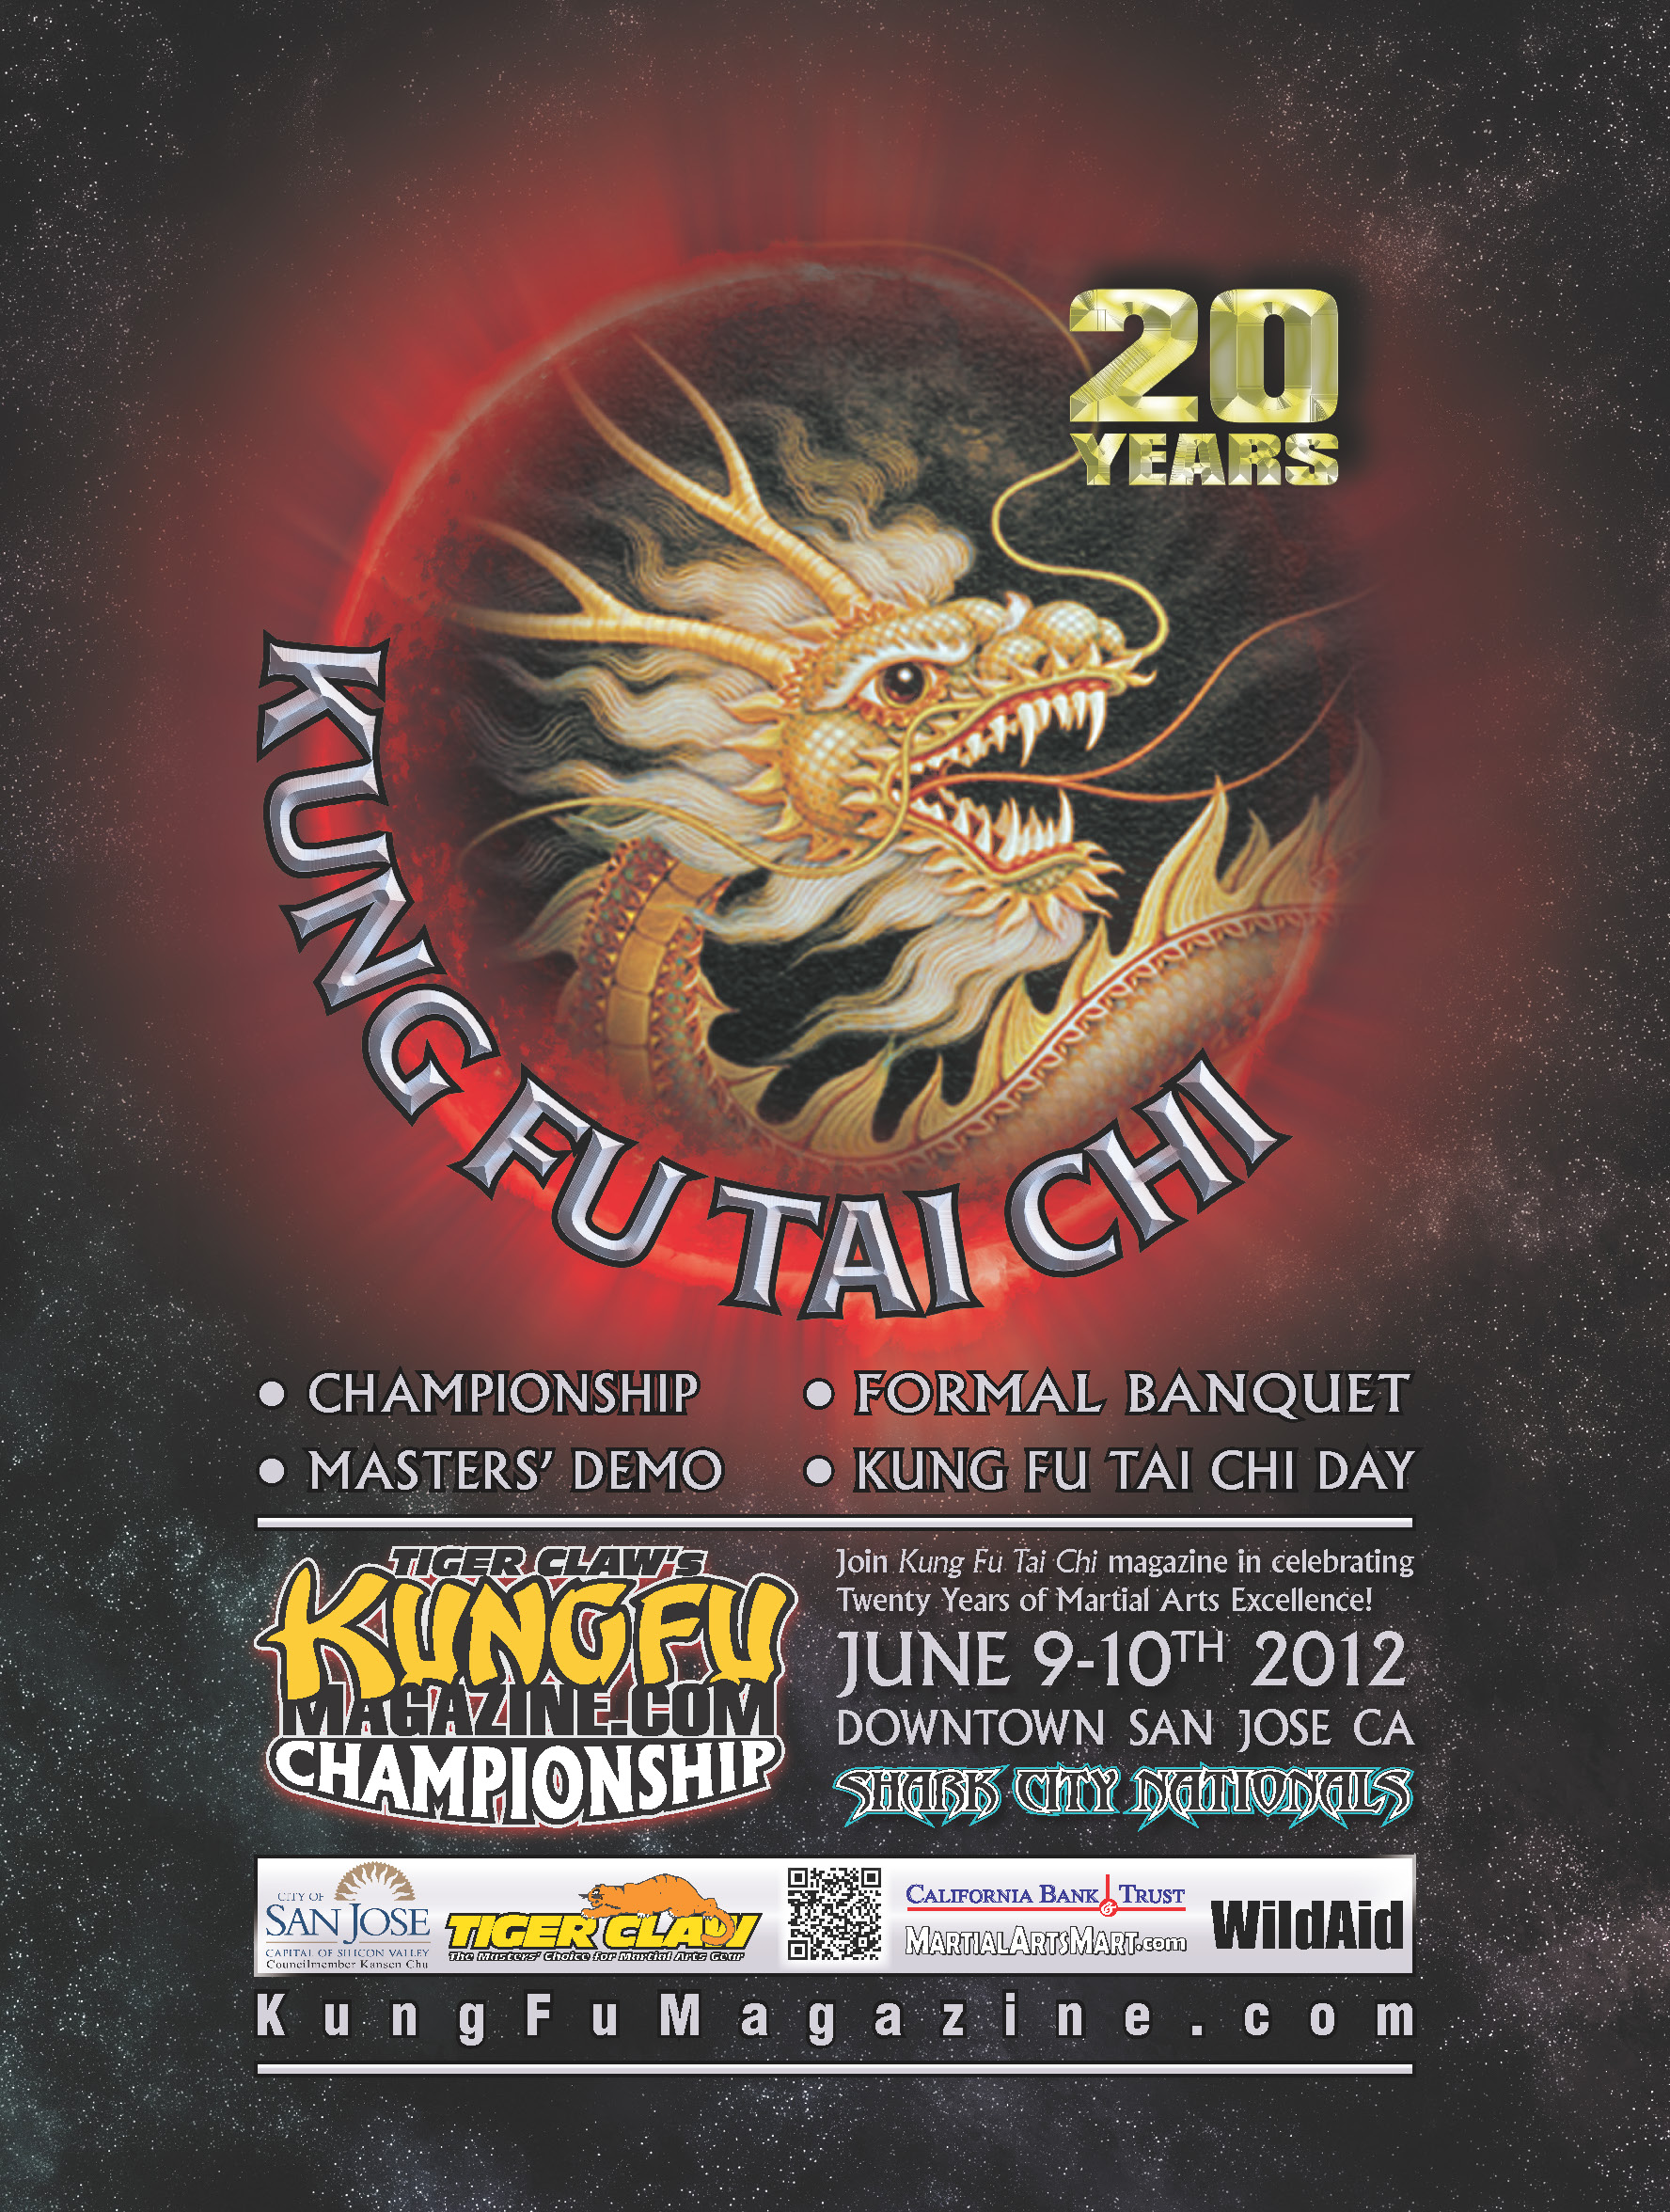 KFTC20 event poster